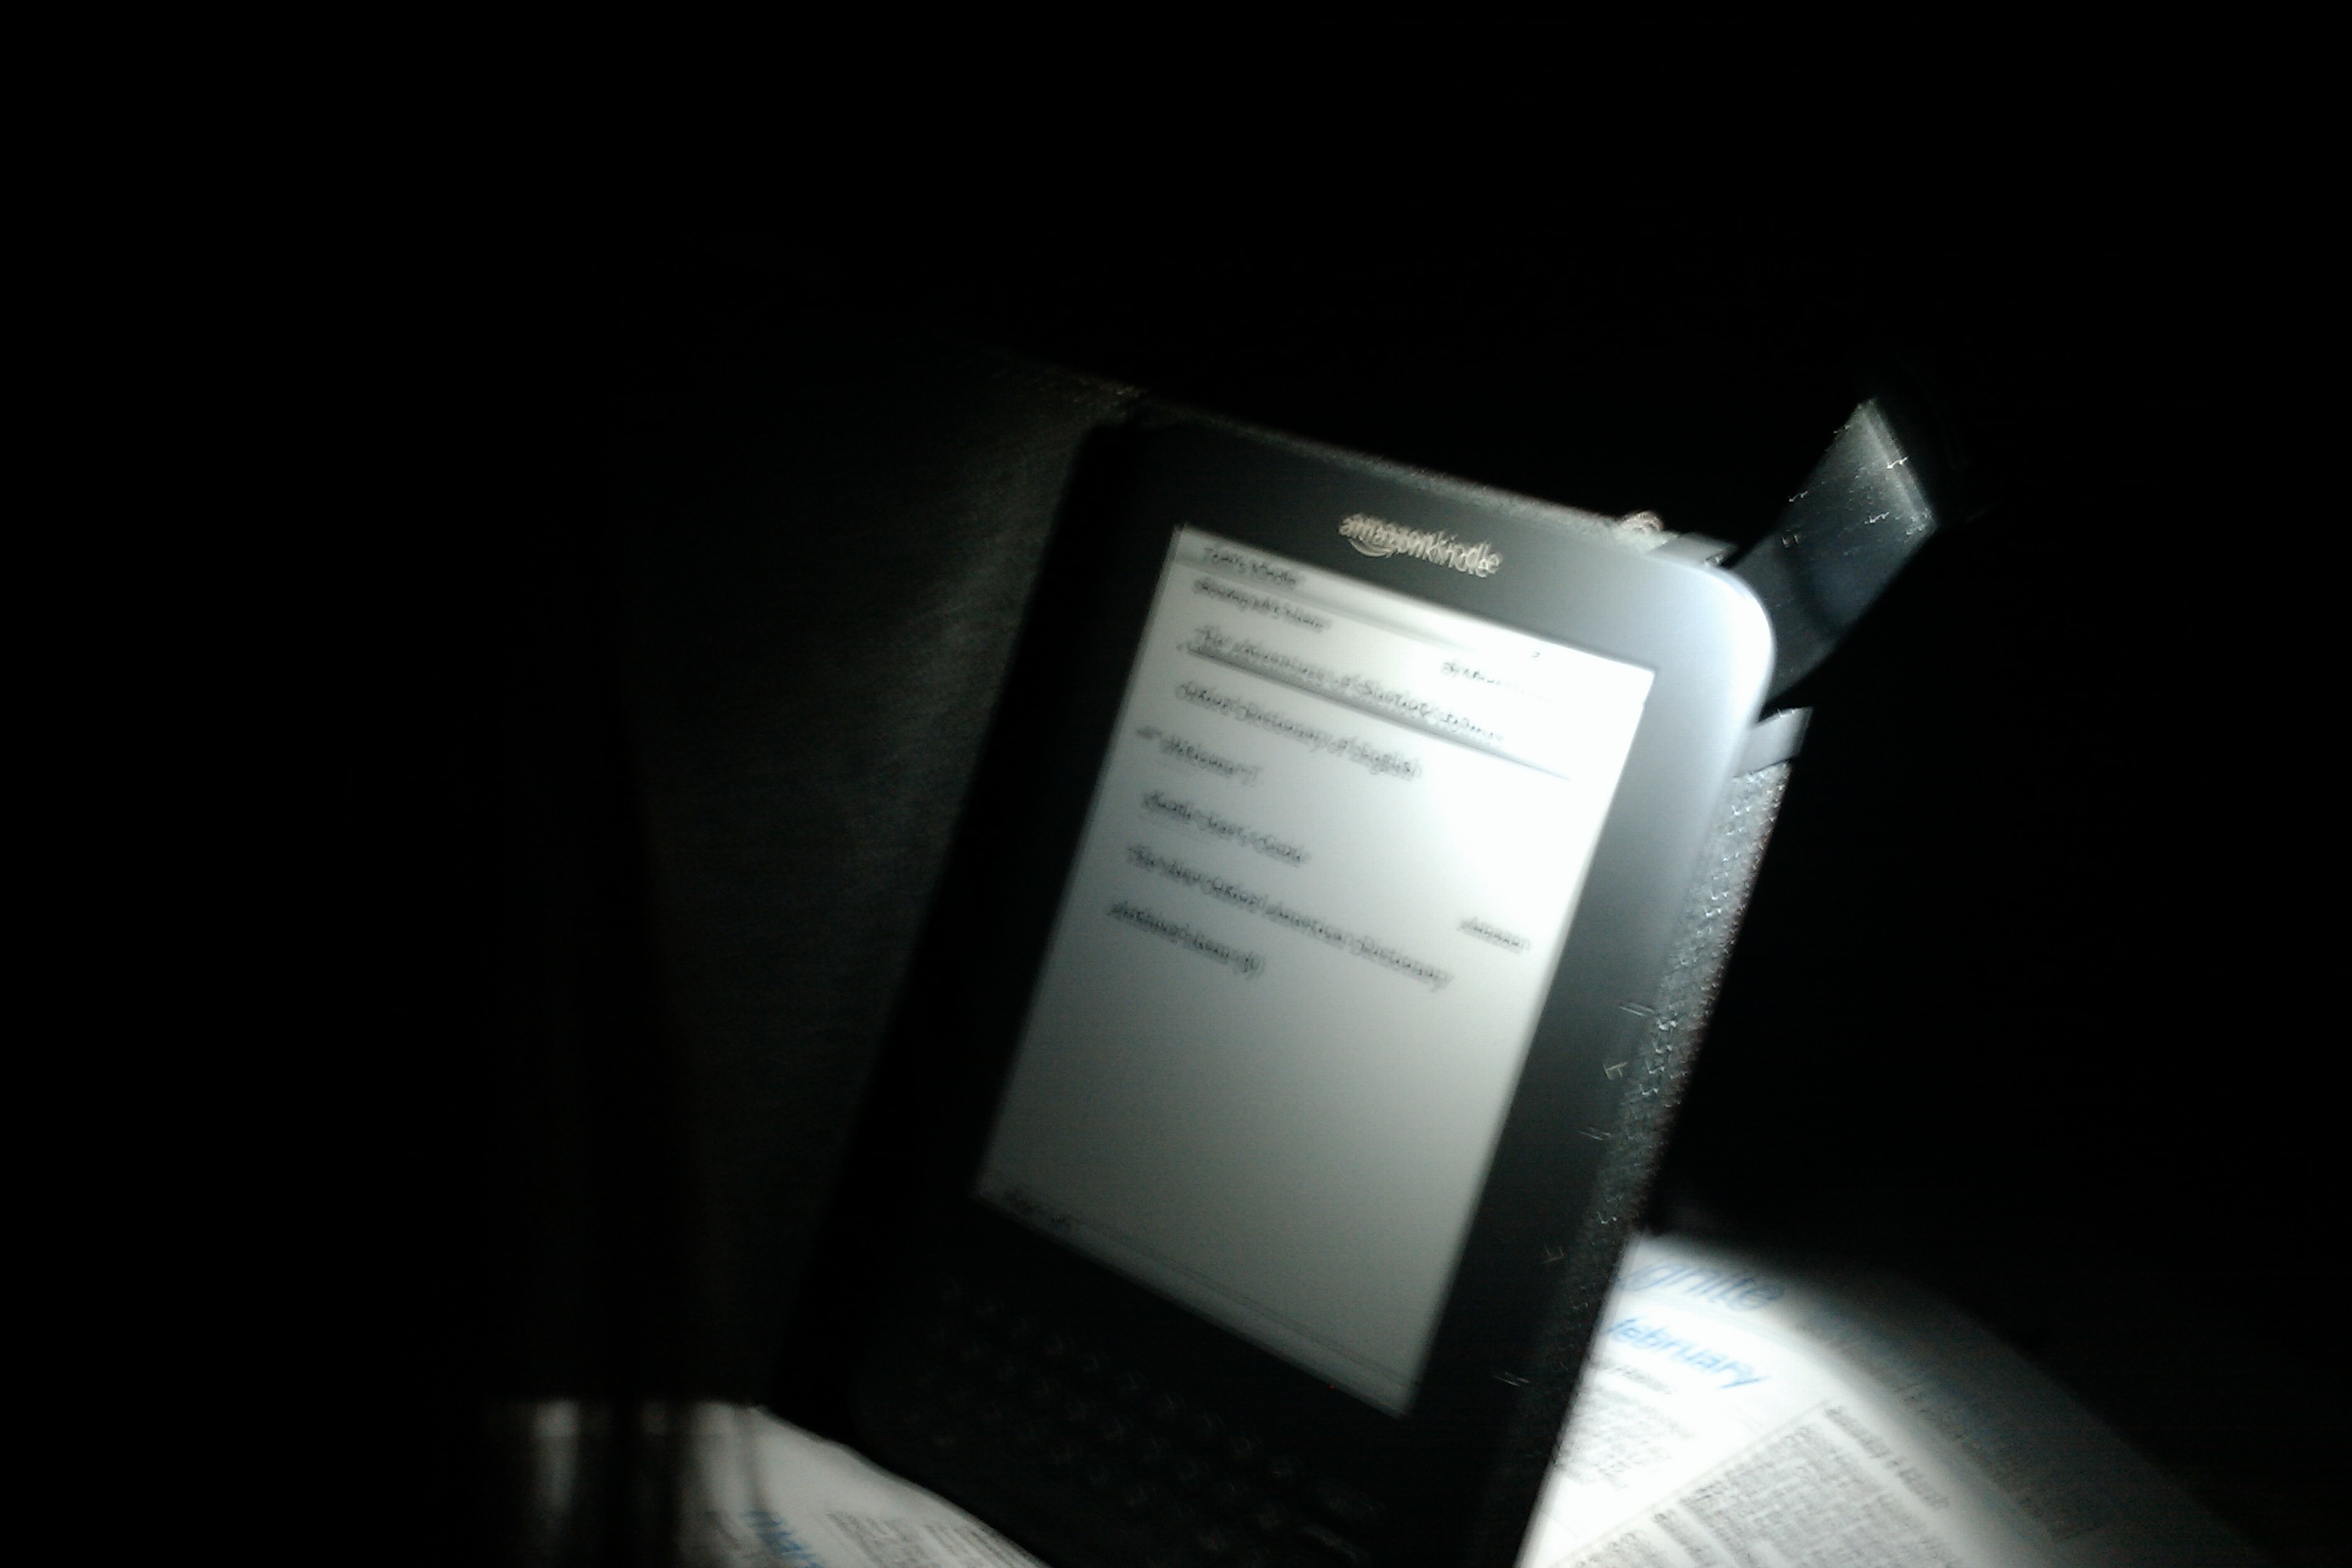 Amazon Kindle light cover in the dark